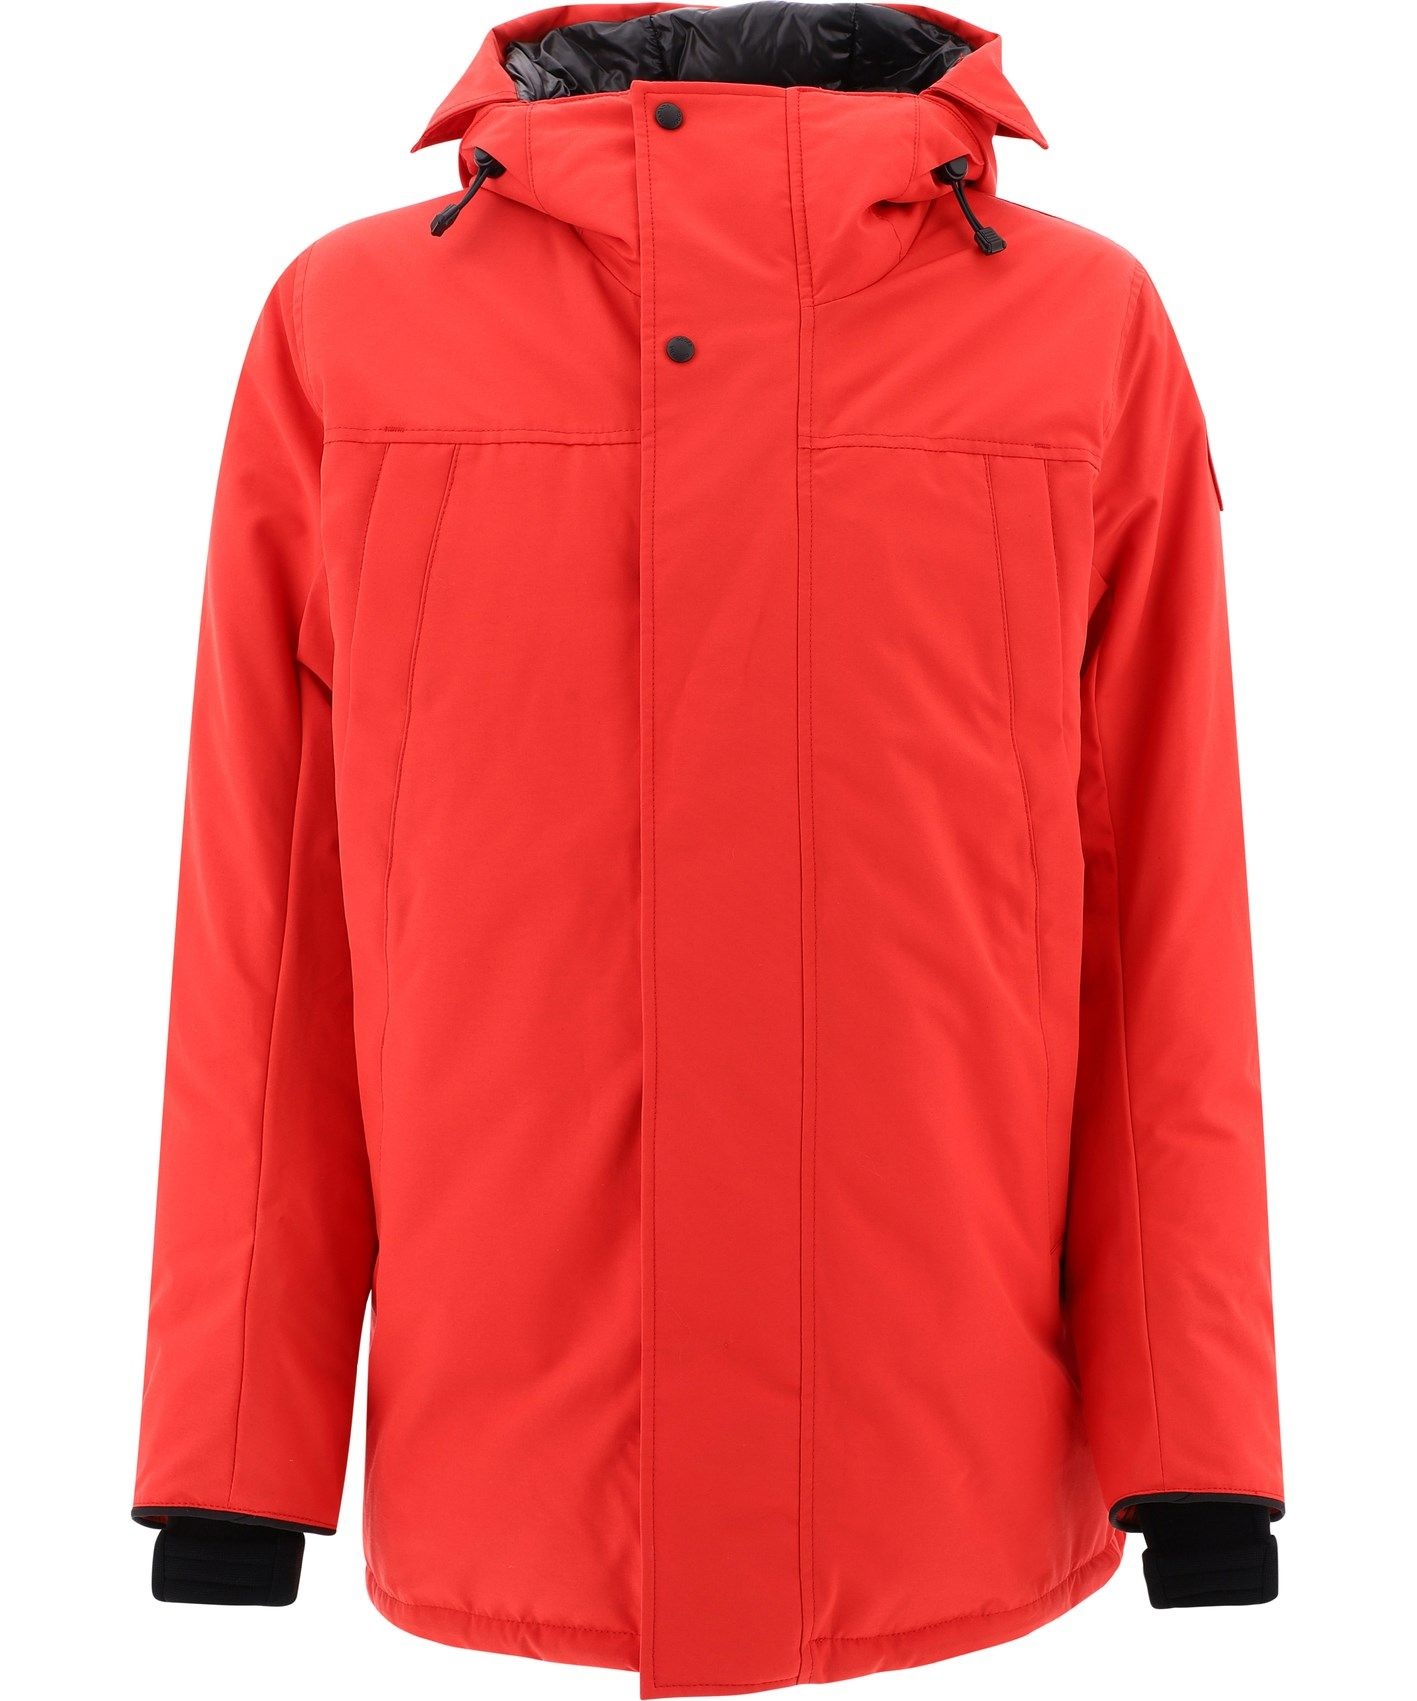 CANADA GOOSE CANADA GOOSE MEN'S 3400M11 RED POLYESTER OUTERWEAR JACKET